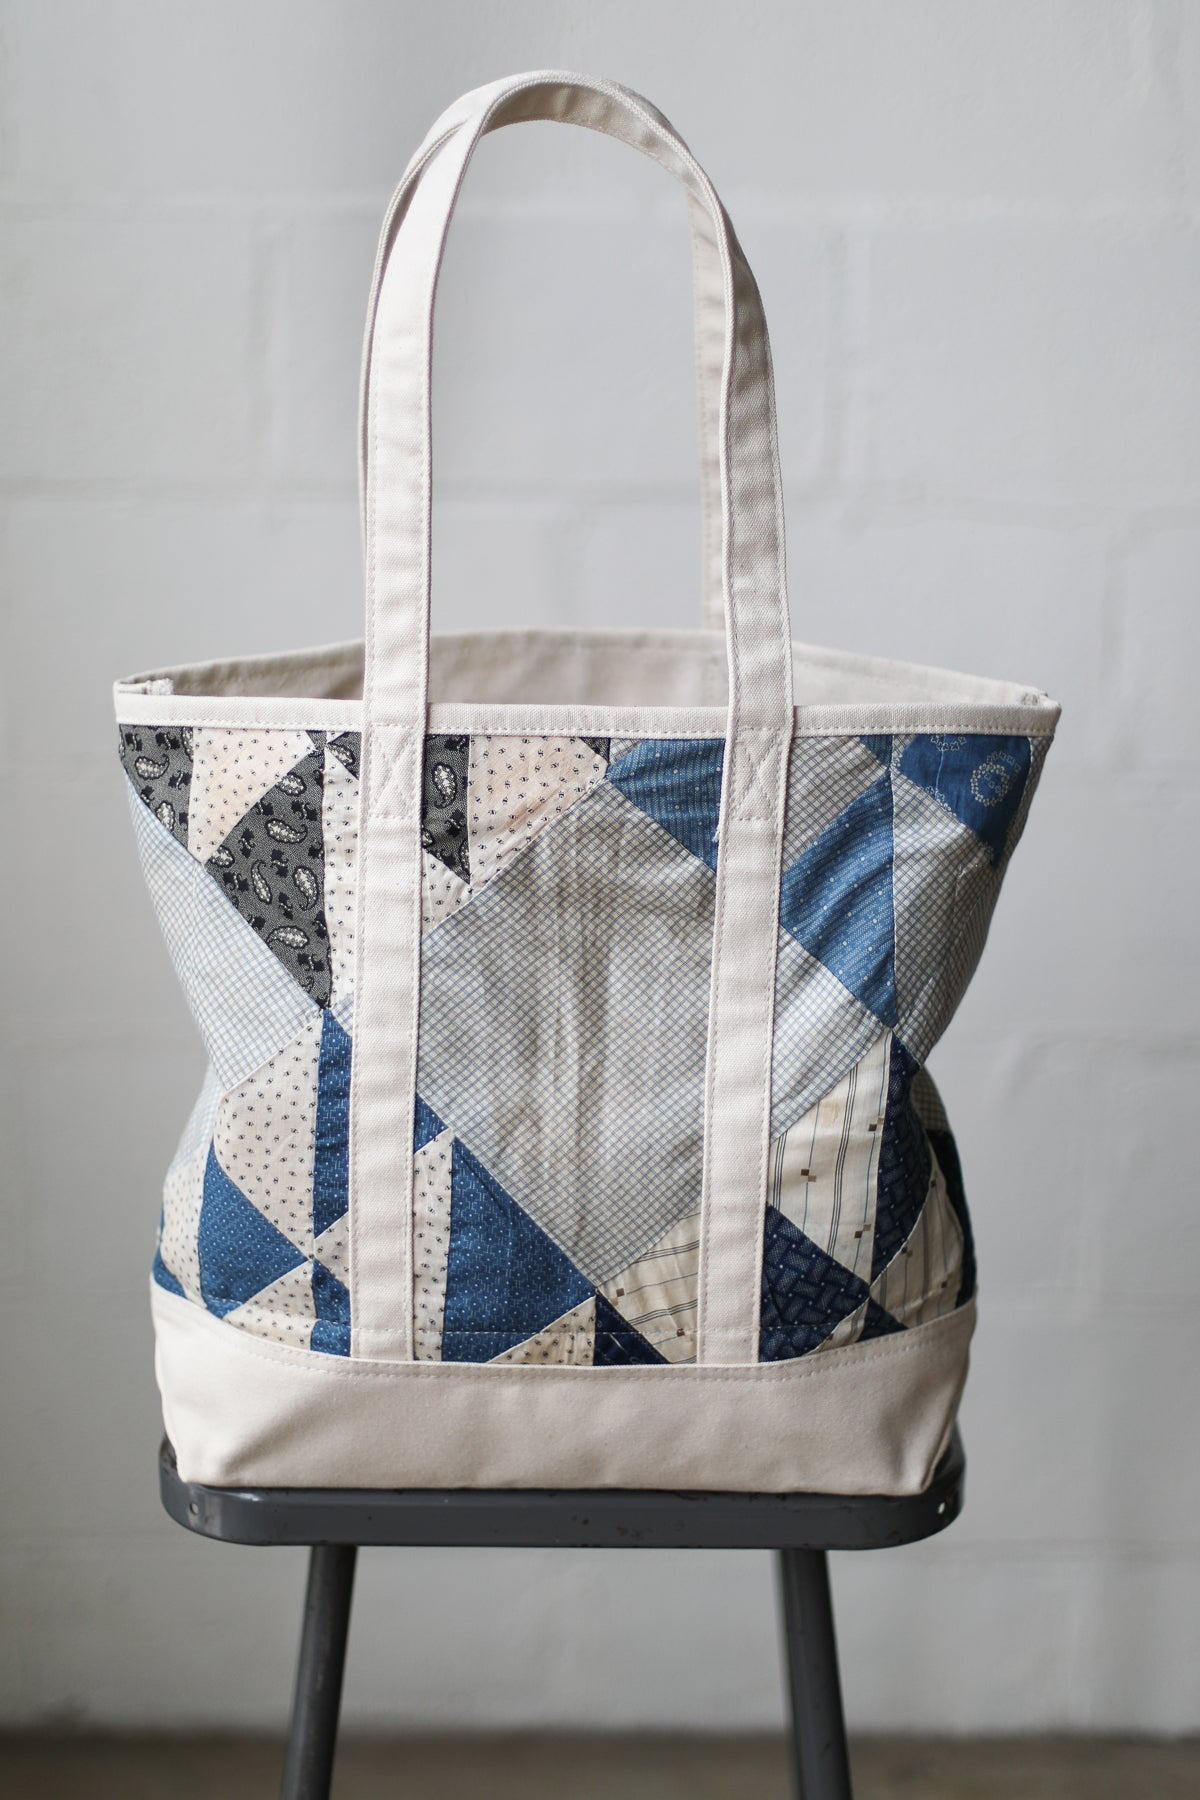 Reclaimed Market Tote No. 002